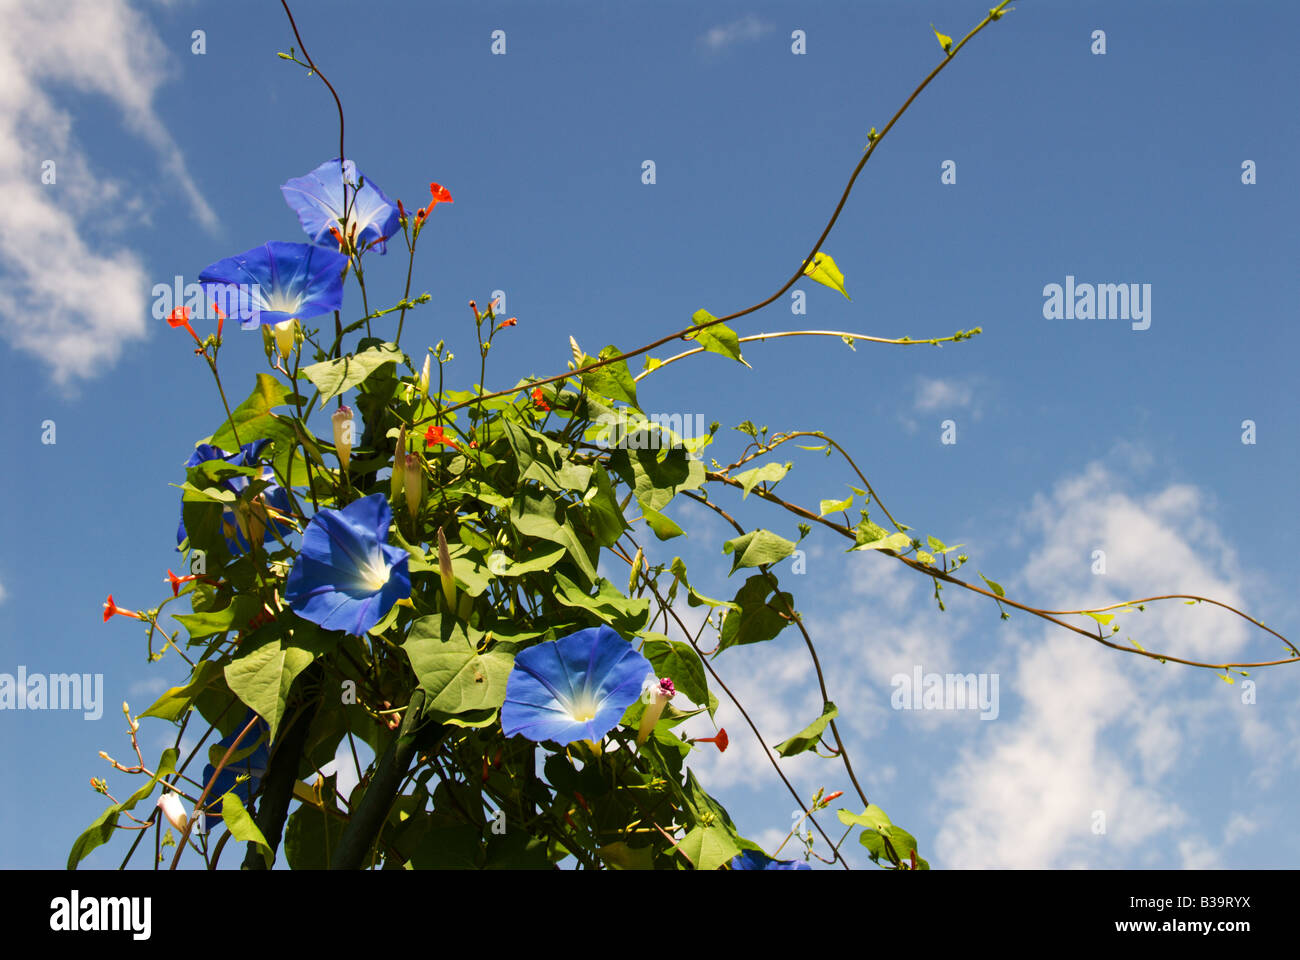 Blue morning glories and red flowers against a blue sky Okaya Nagano Japan August17 2008 - Stock Image